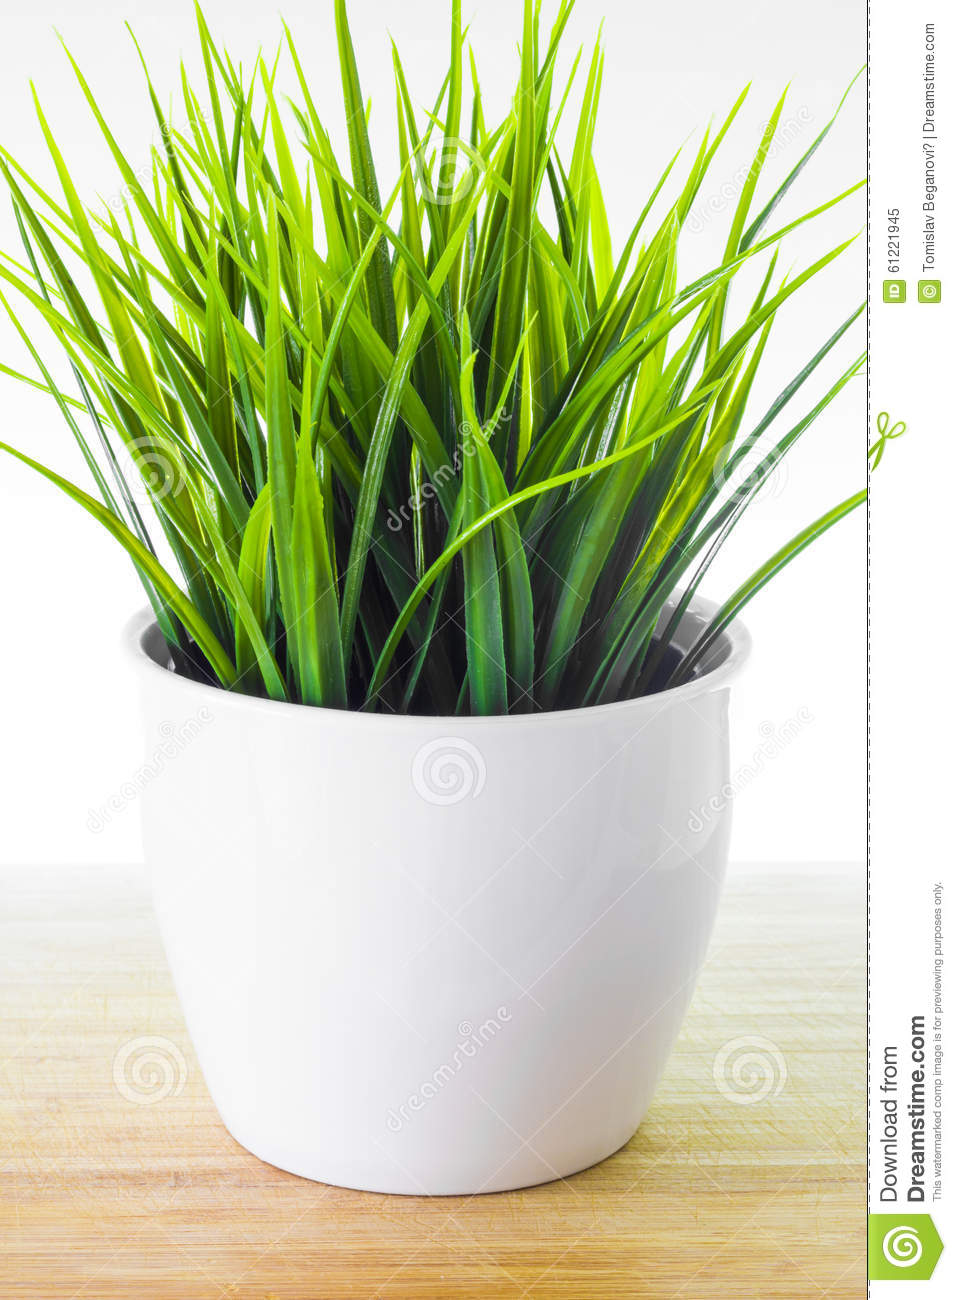 Decorative wheatgrass plant in white flower pot stock image image decorative wheatgrass plant in white flower pot mightylinksfo